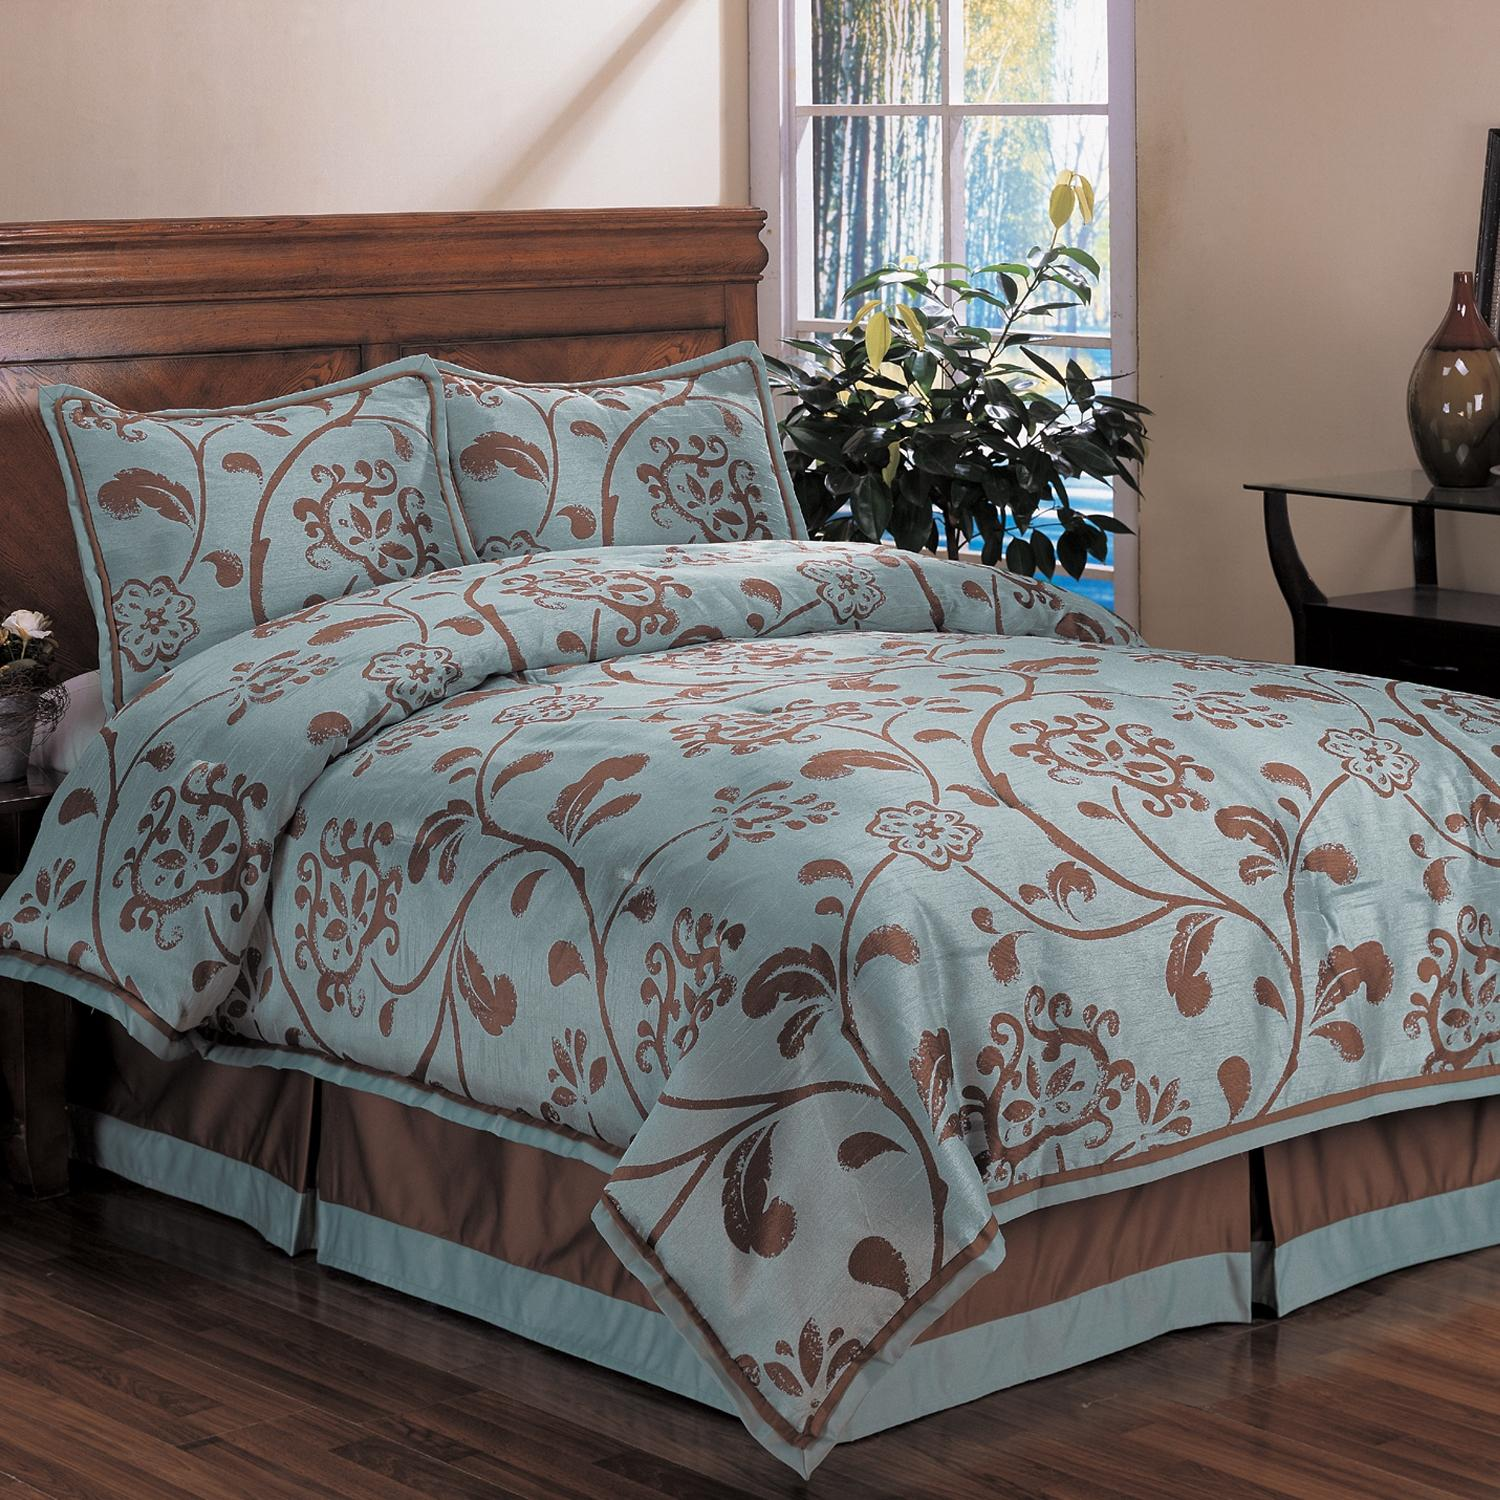 Bella Floral King Size 4 Piece Comforter Set